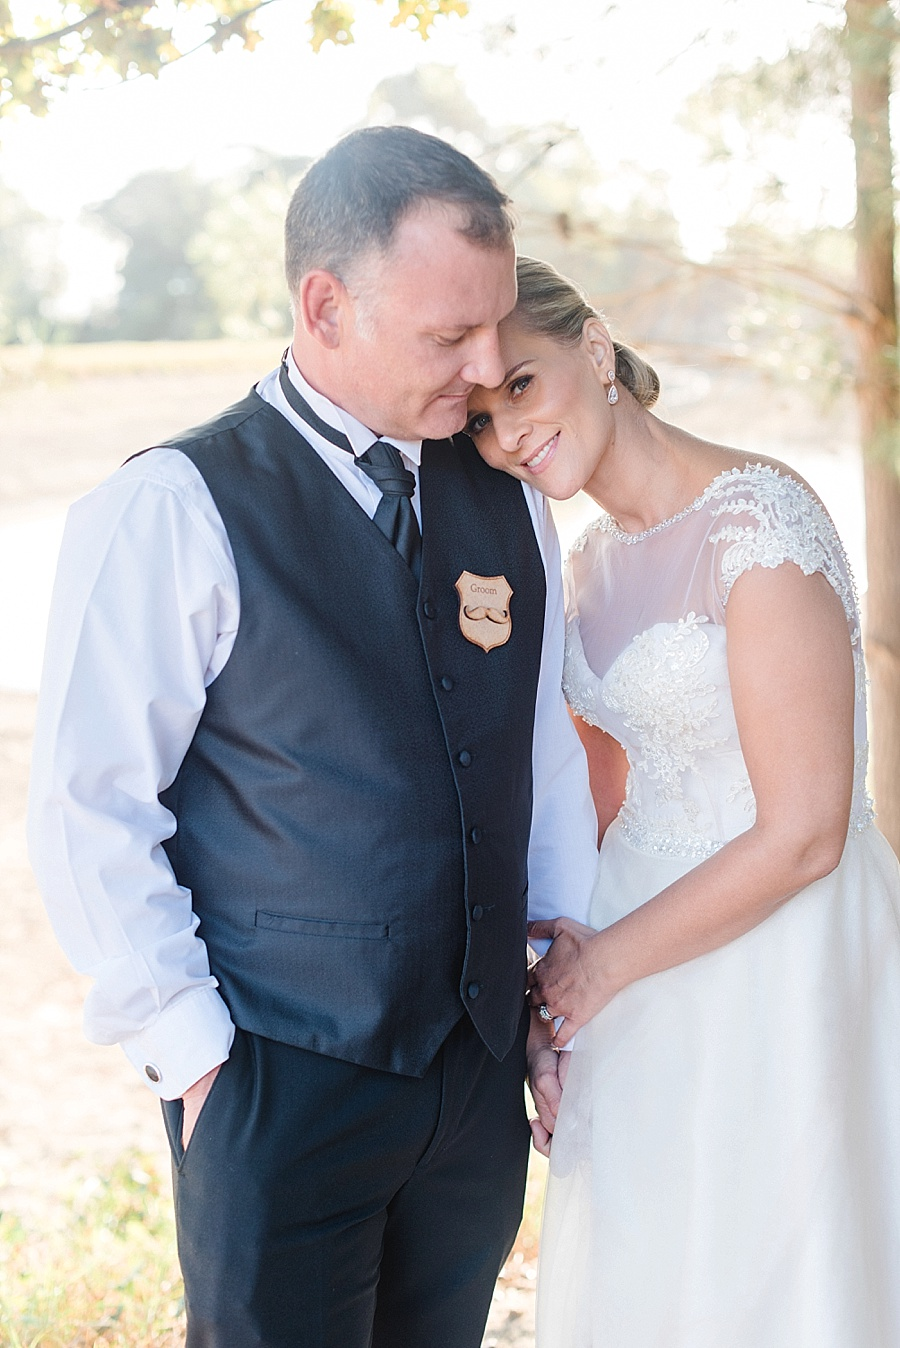 Darren Bester - Wedding Photographer - Langkloof Roses - Lauren + Shannon_0065.jpg